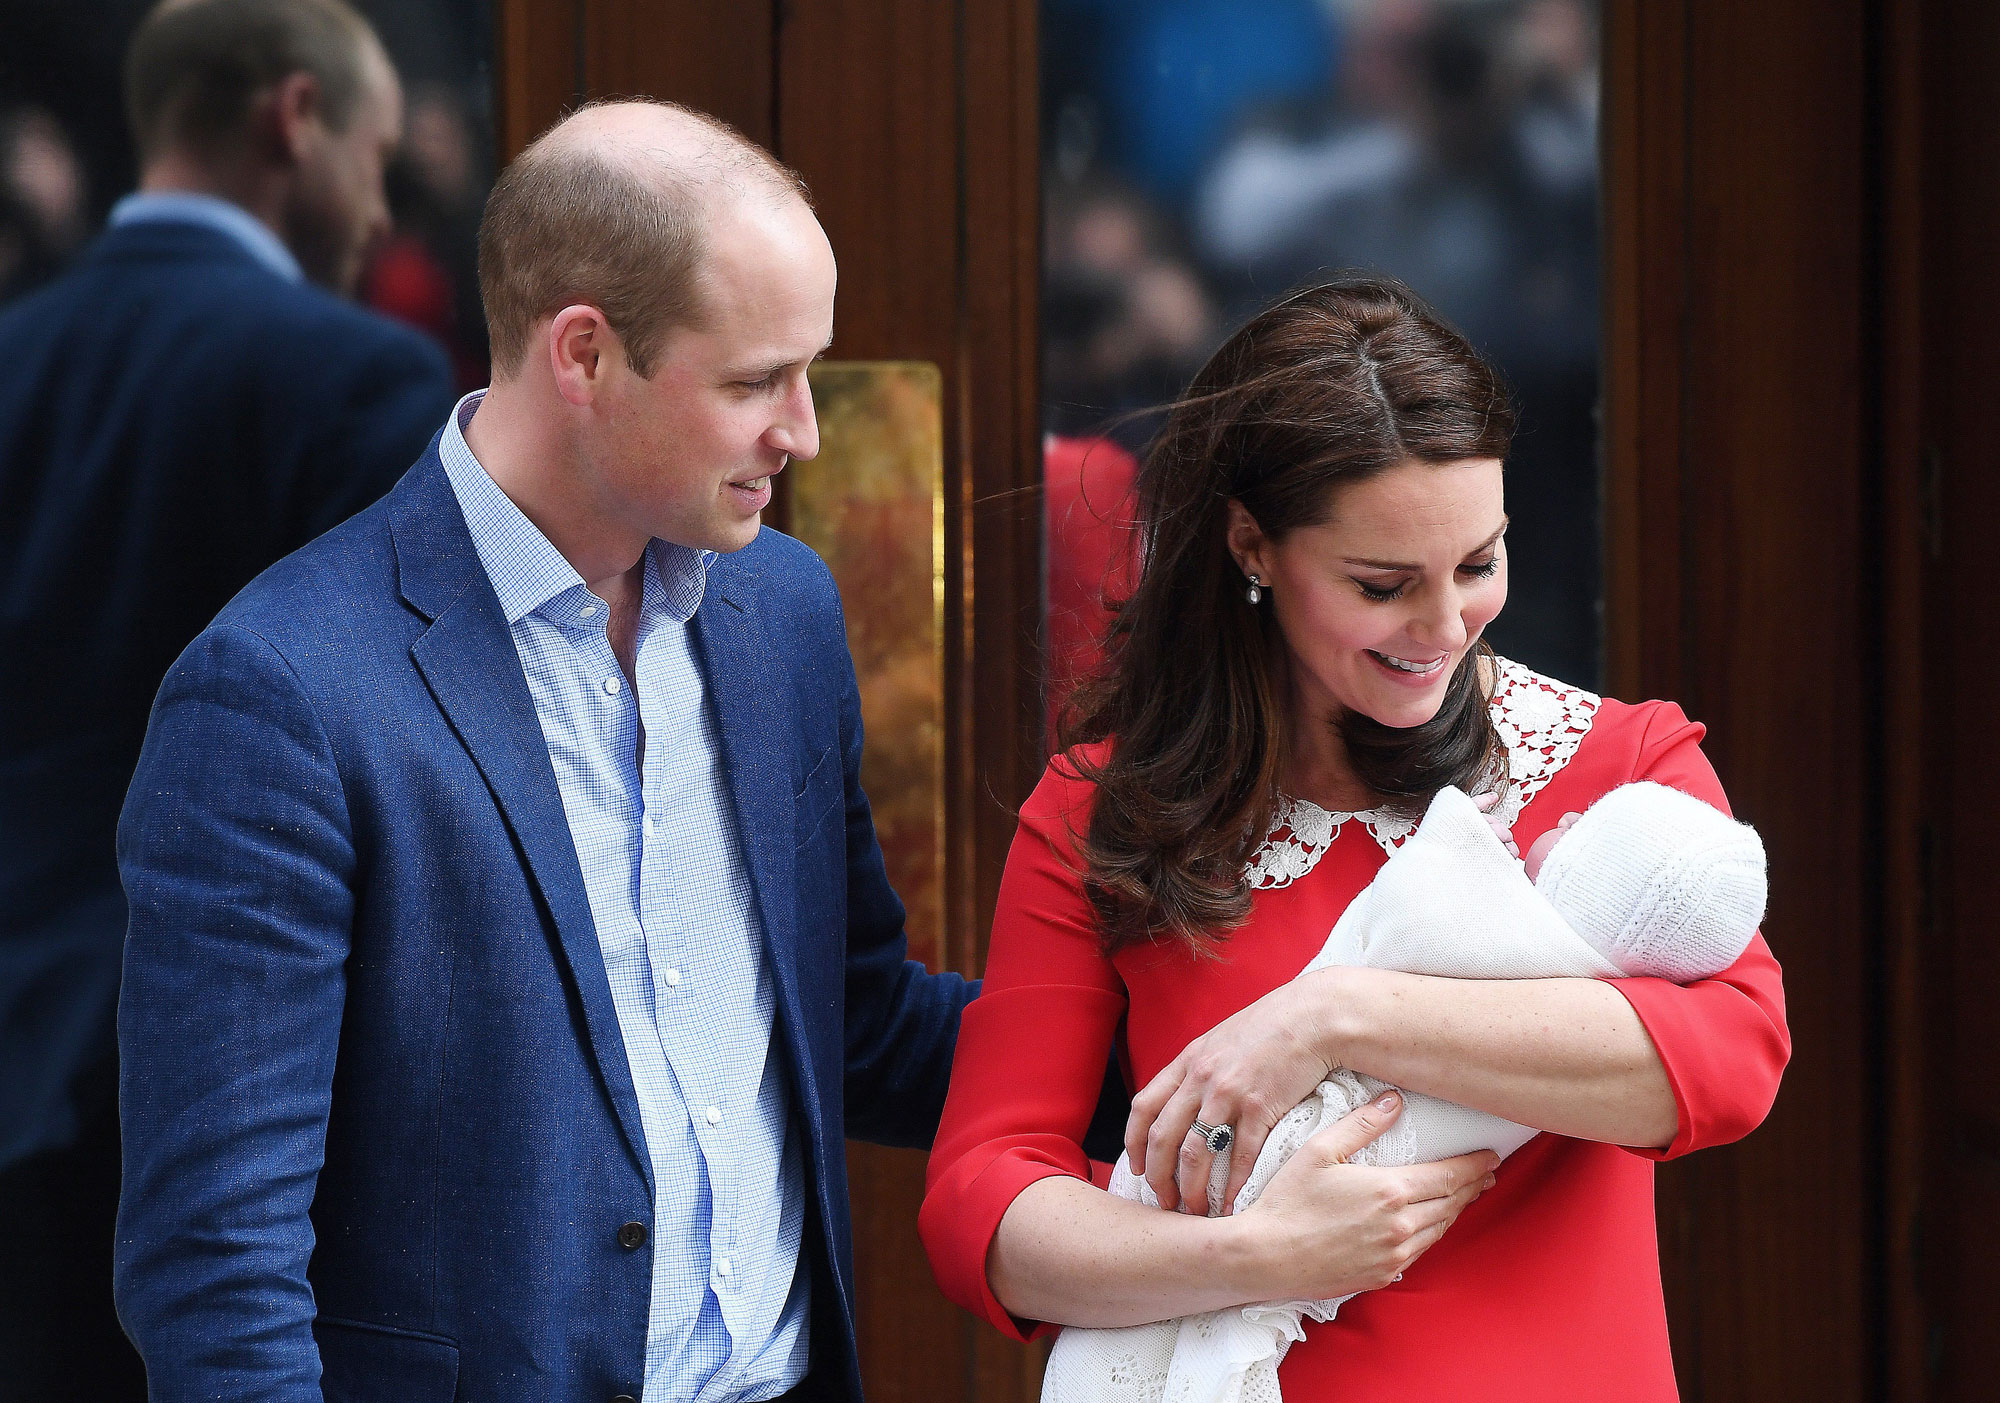 NEW ROYAL BABY HAS A NAME!